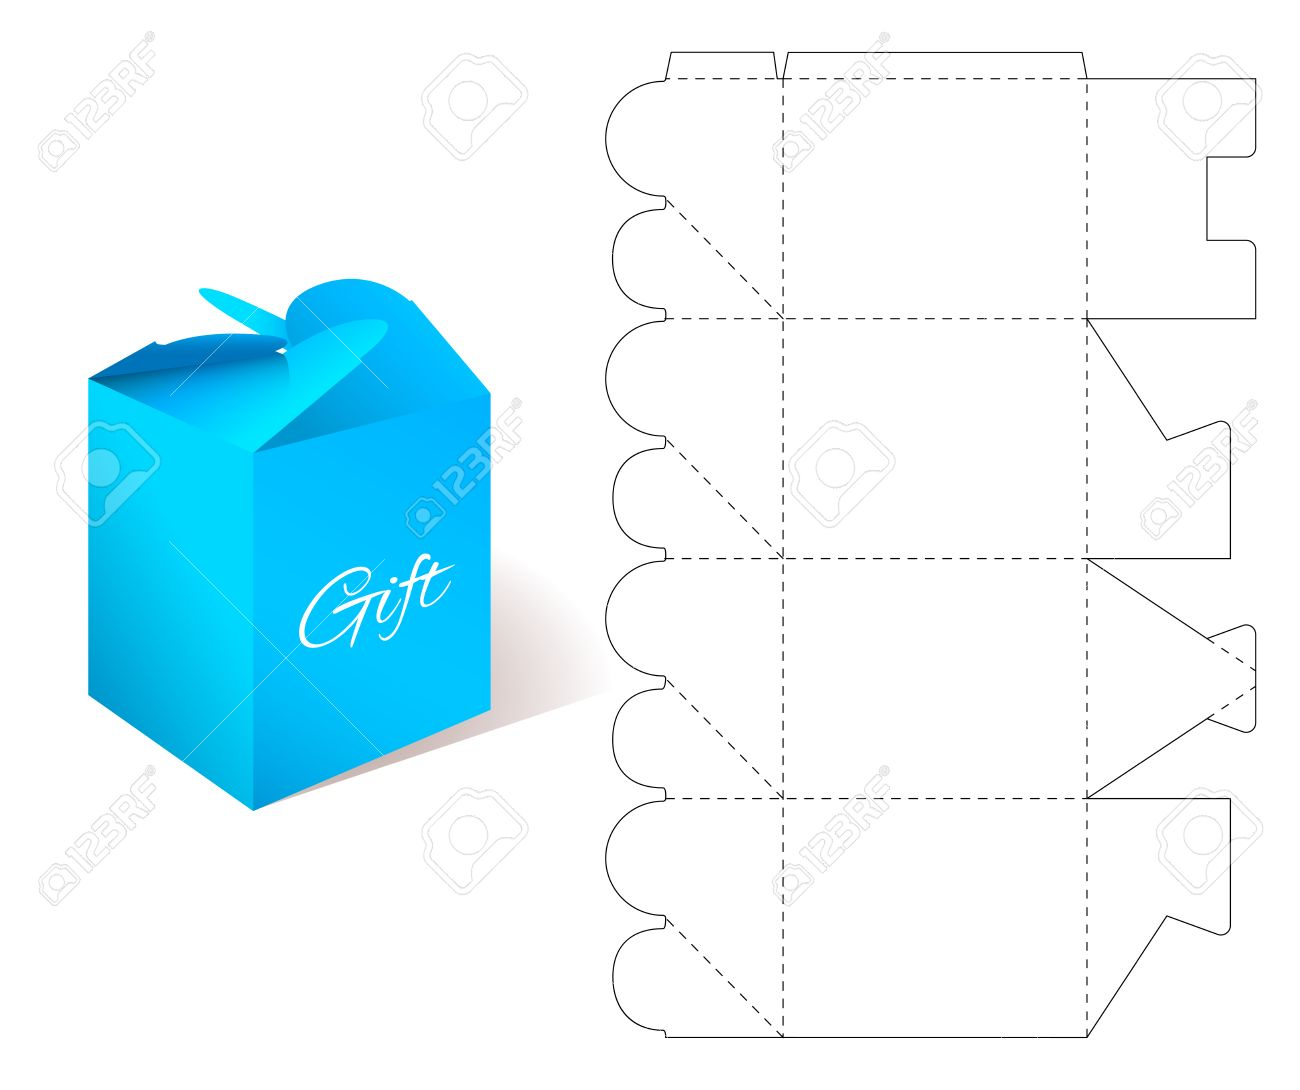 Paper box gift paper box with blueprint template illustration gift paper box with blueprint template illustration of gift craft box for malvernweather